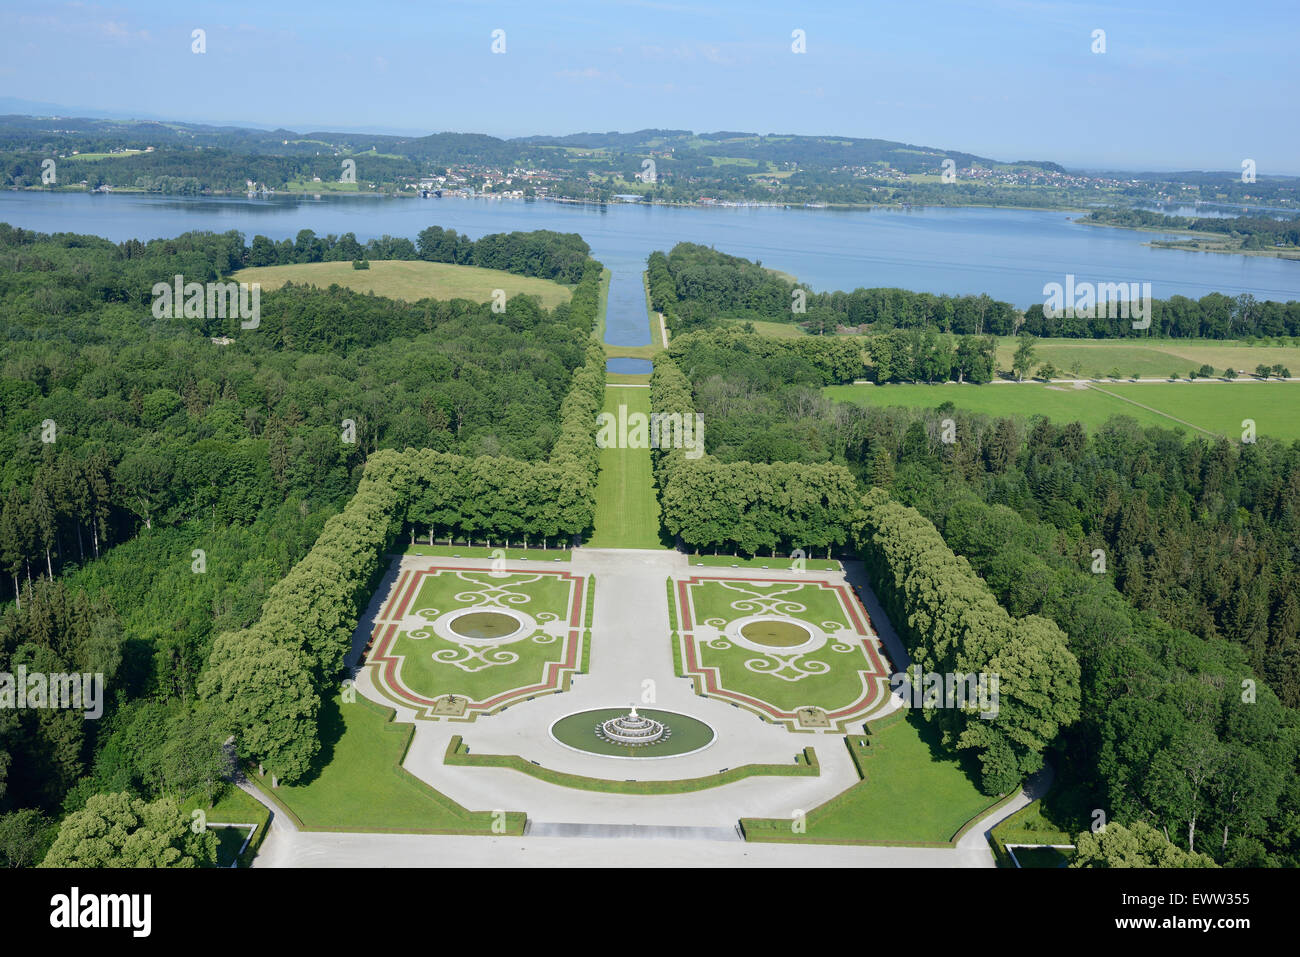 GARDEN OF THE HERRENCHIEMSEE PALACE (aerial view). Herreninsel Island, Chiemsee Lake, Bavaria, Germany. - Stock Image